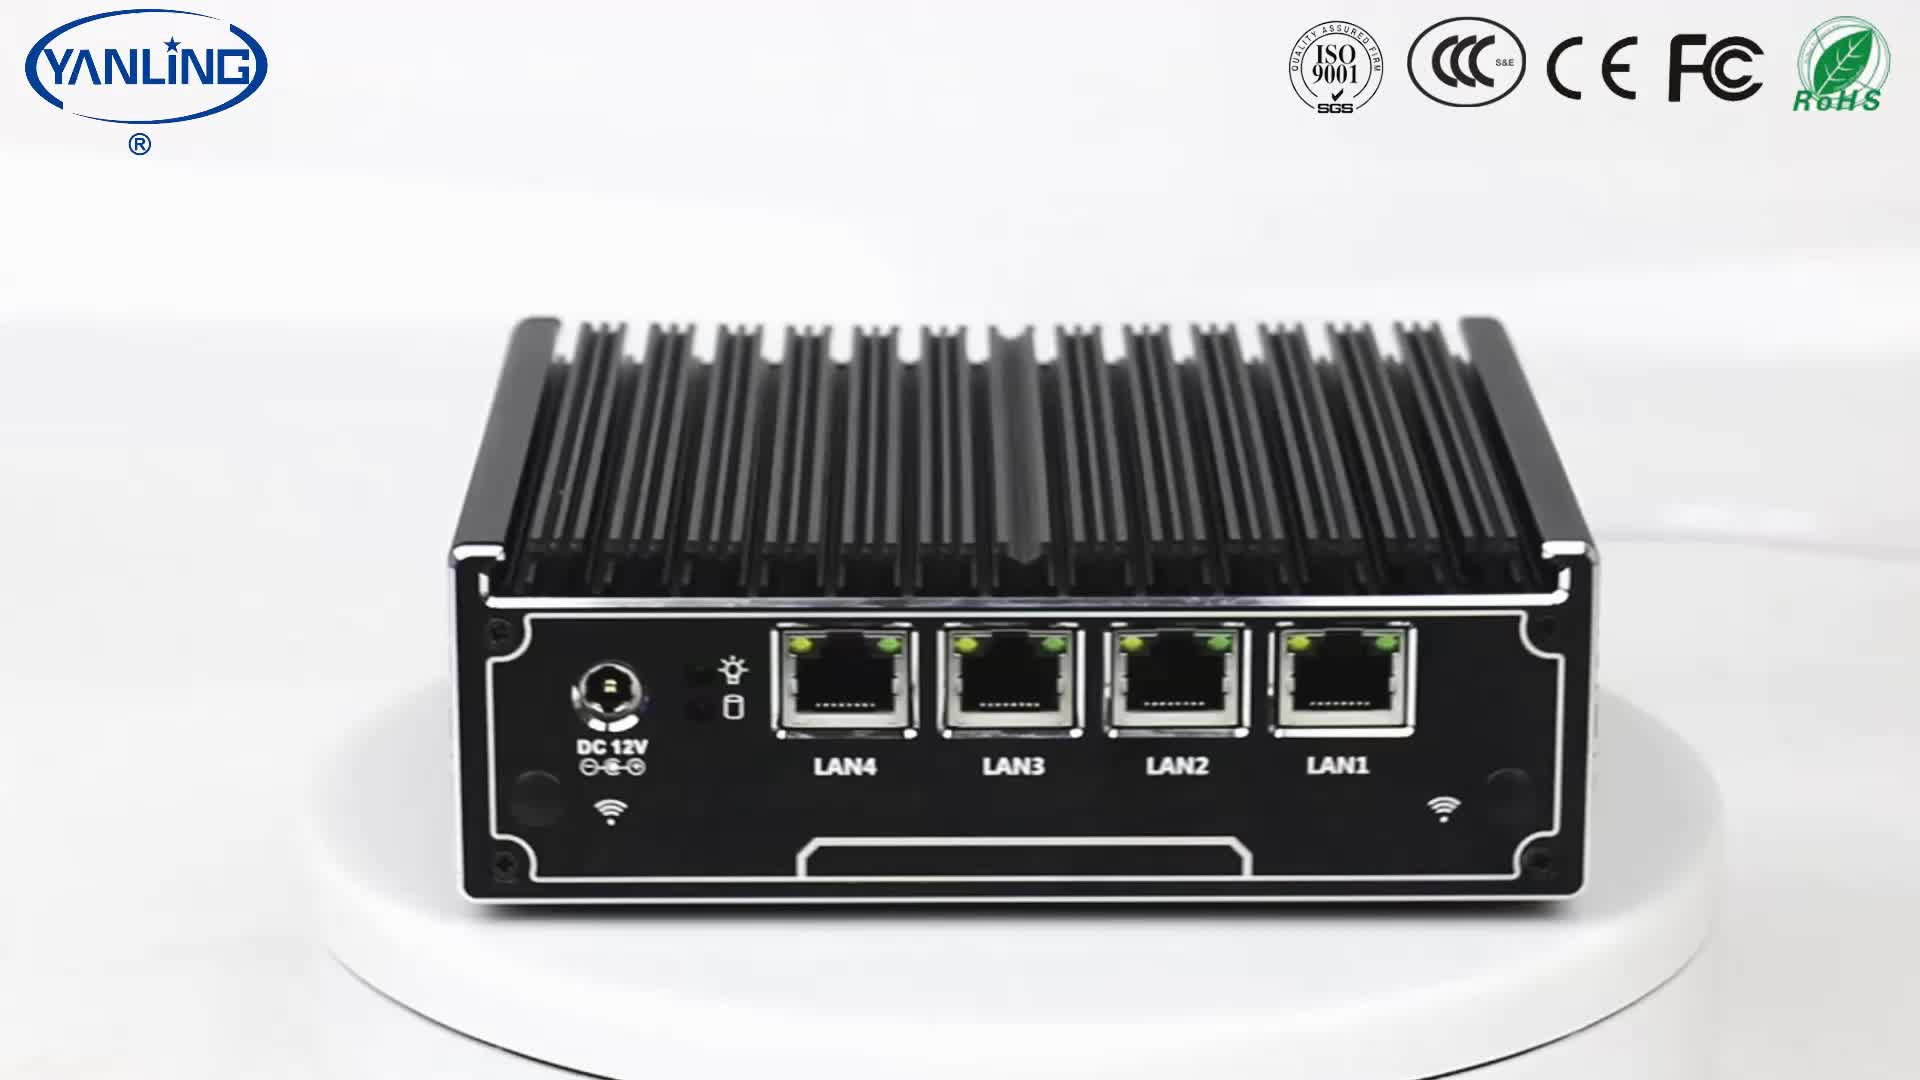 Online förderung Weiche router IPC intel J1900 quad core 4 gigabit lan dns server embedded x86 bord mini pc server